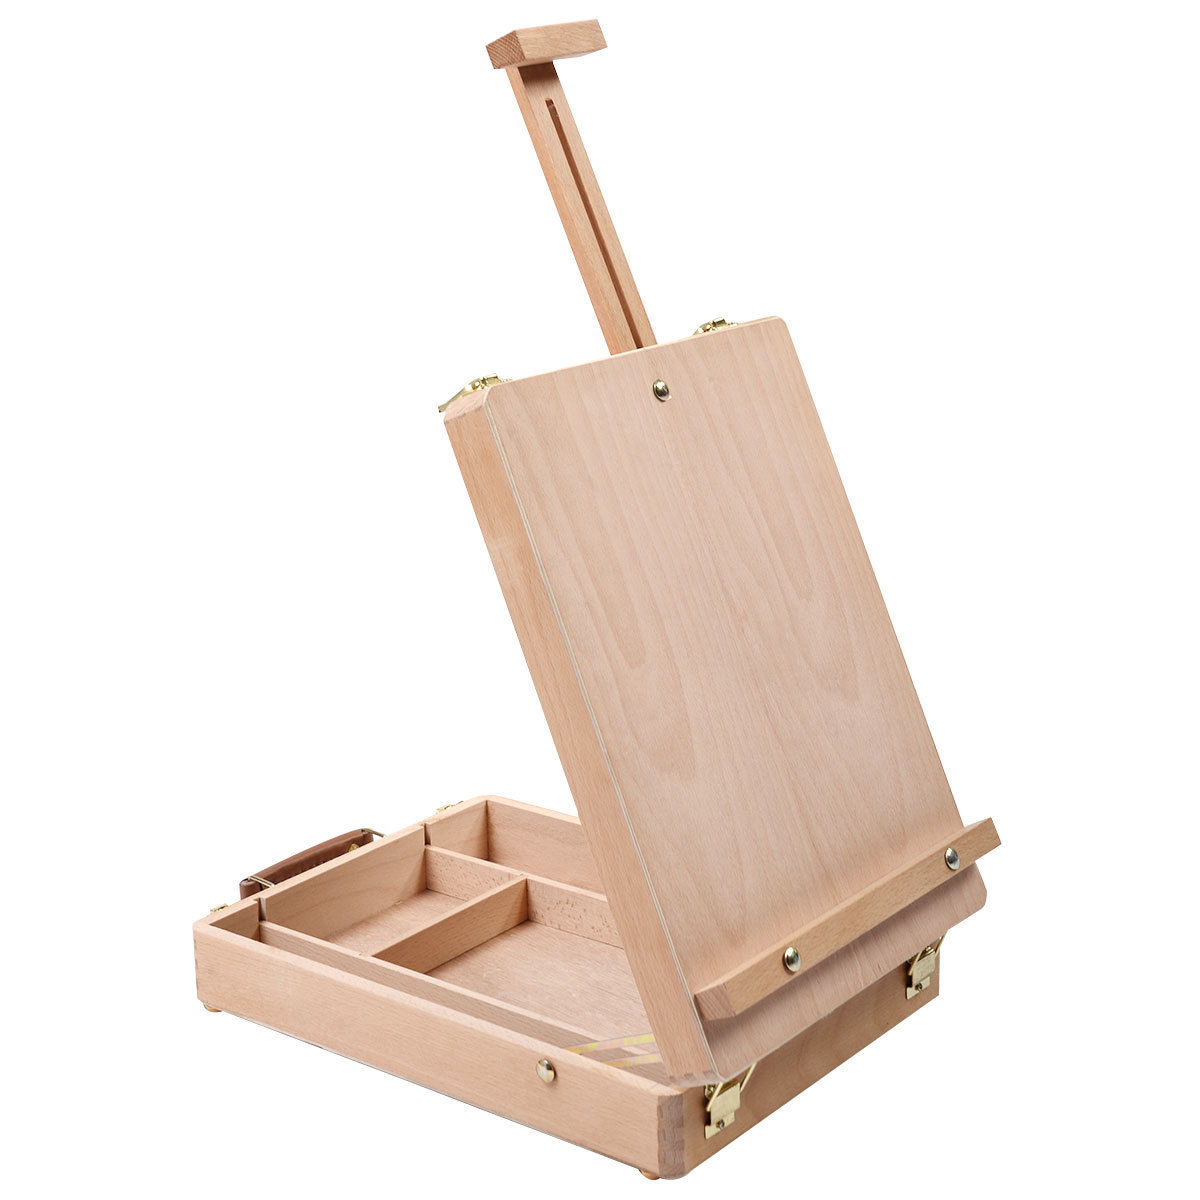 NEW Easel with Integrated Wooden Box Art Drawing Painting Table Box Multifunctional Oil Paint Suitcase Desktop Box Art Supplies table easel artist craft with integrated wooden box art drawing painting table box scll